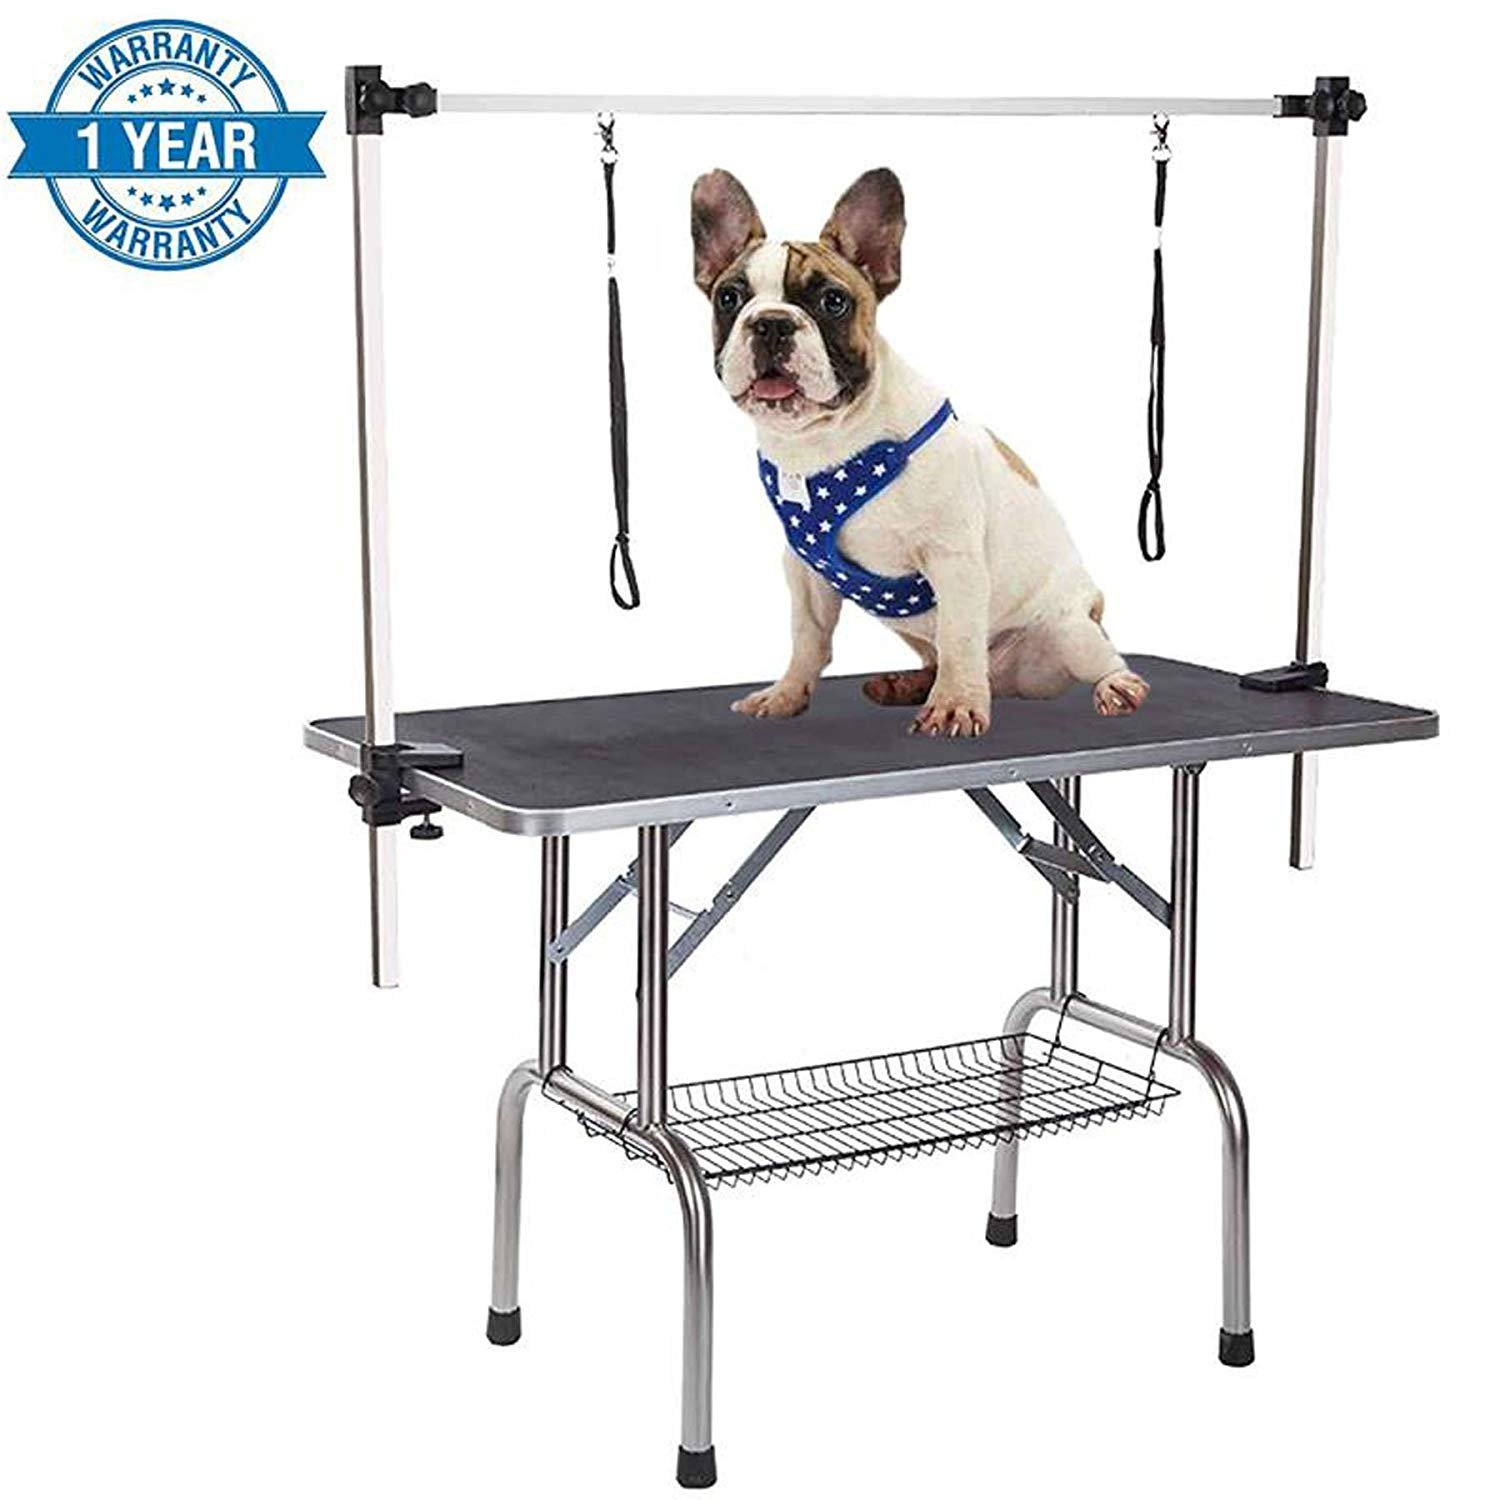 Affordable Dog Grooming Table Arm Get Quotations · Gelinzon Dog Grooming Table Large Heavy Duty Portable with  Adjustable Arm and Clamp